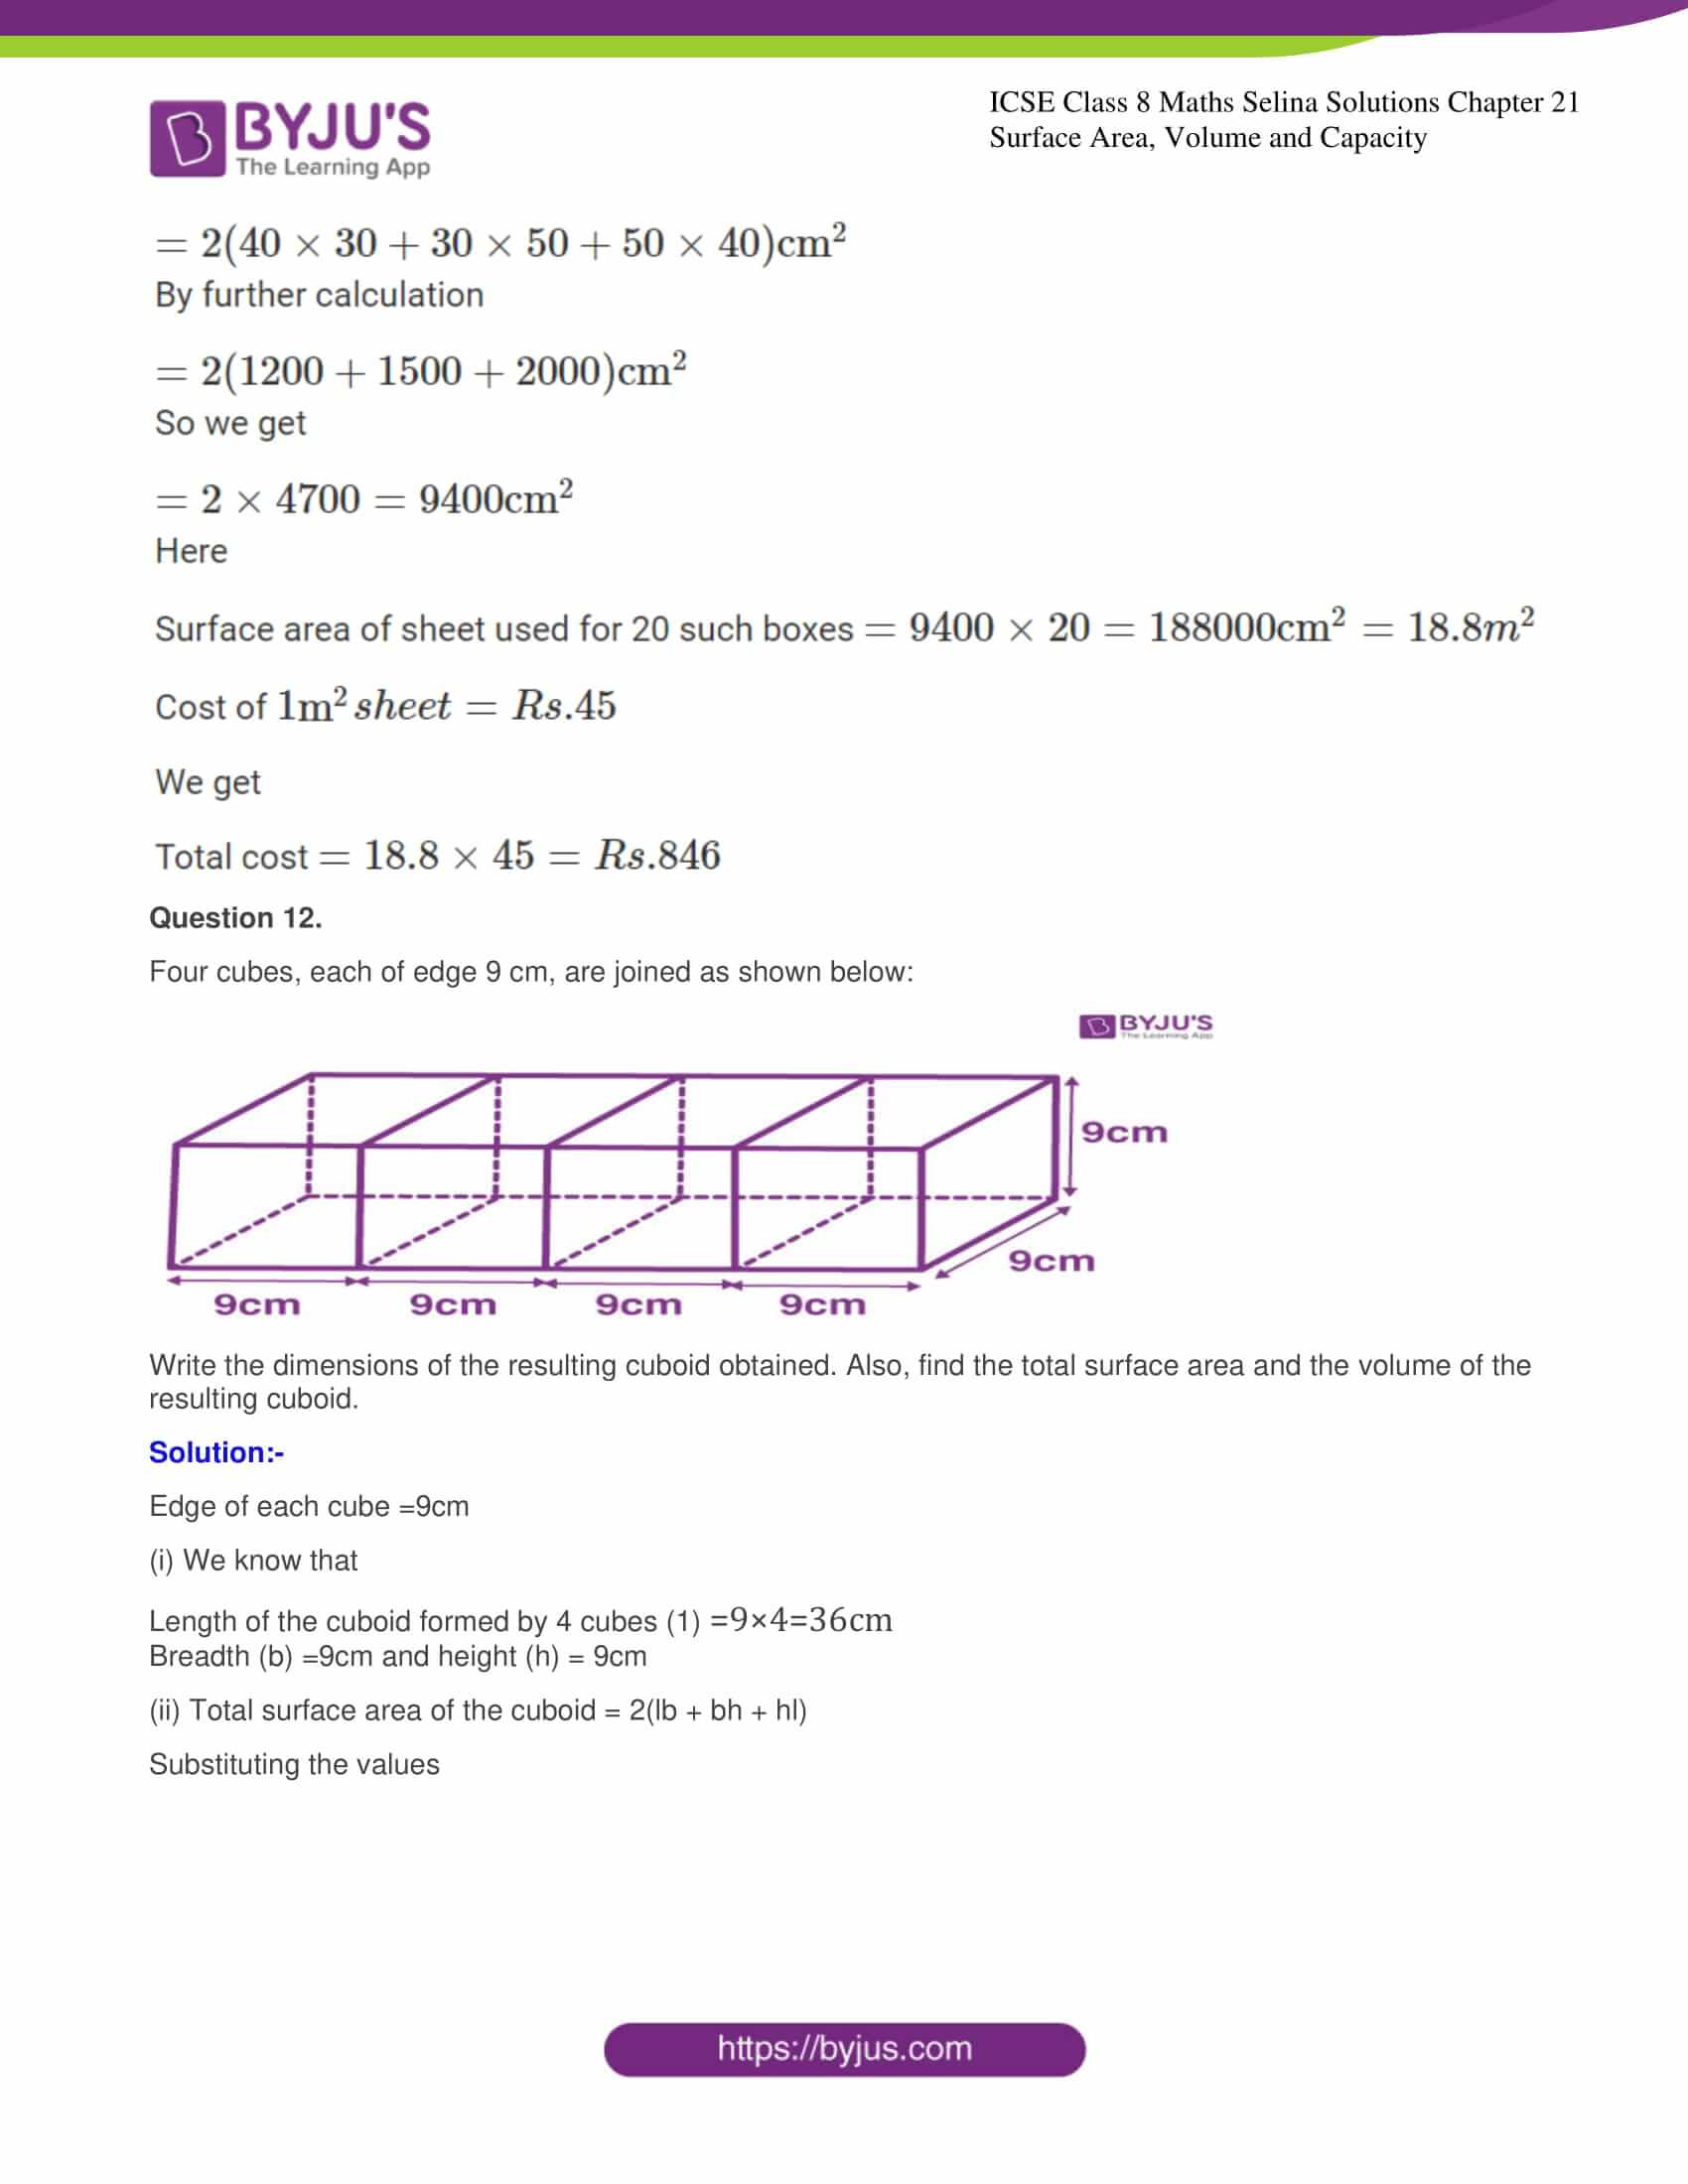 icse class 8 maths may3 selina solutions chapter 21 surface area volume and capacity 09